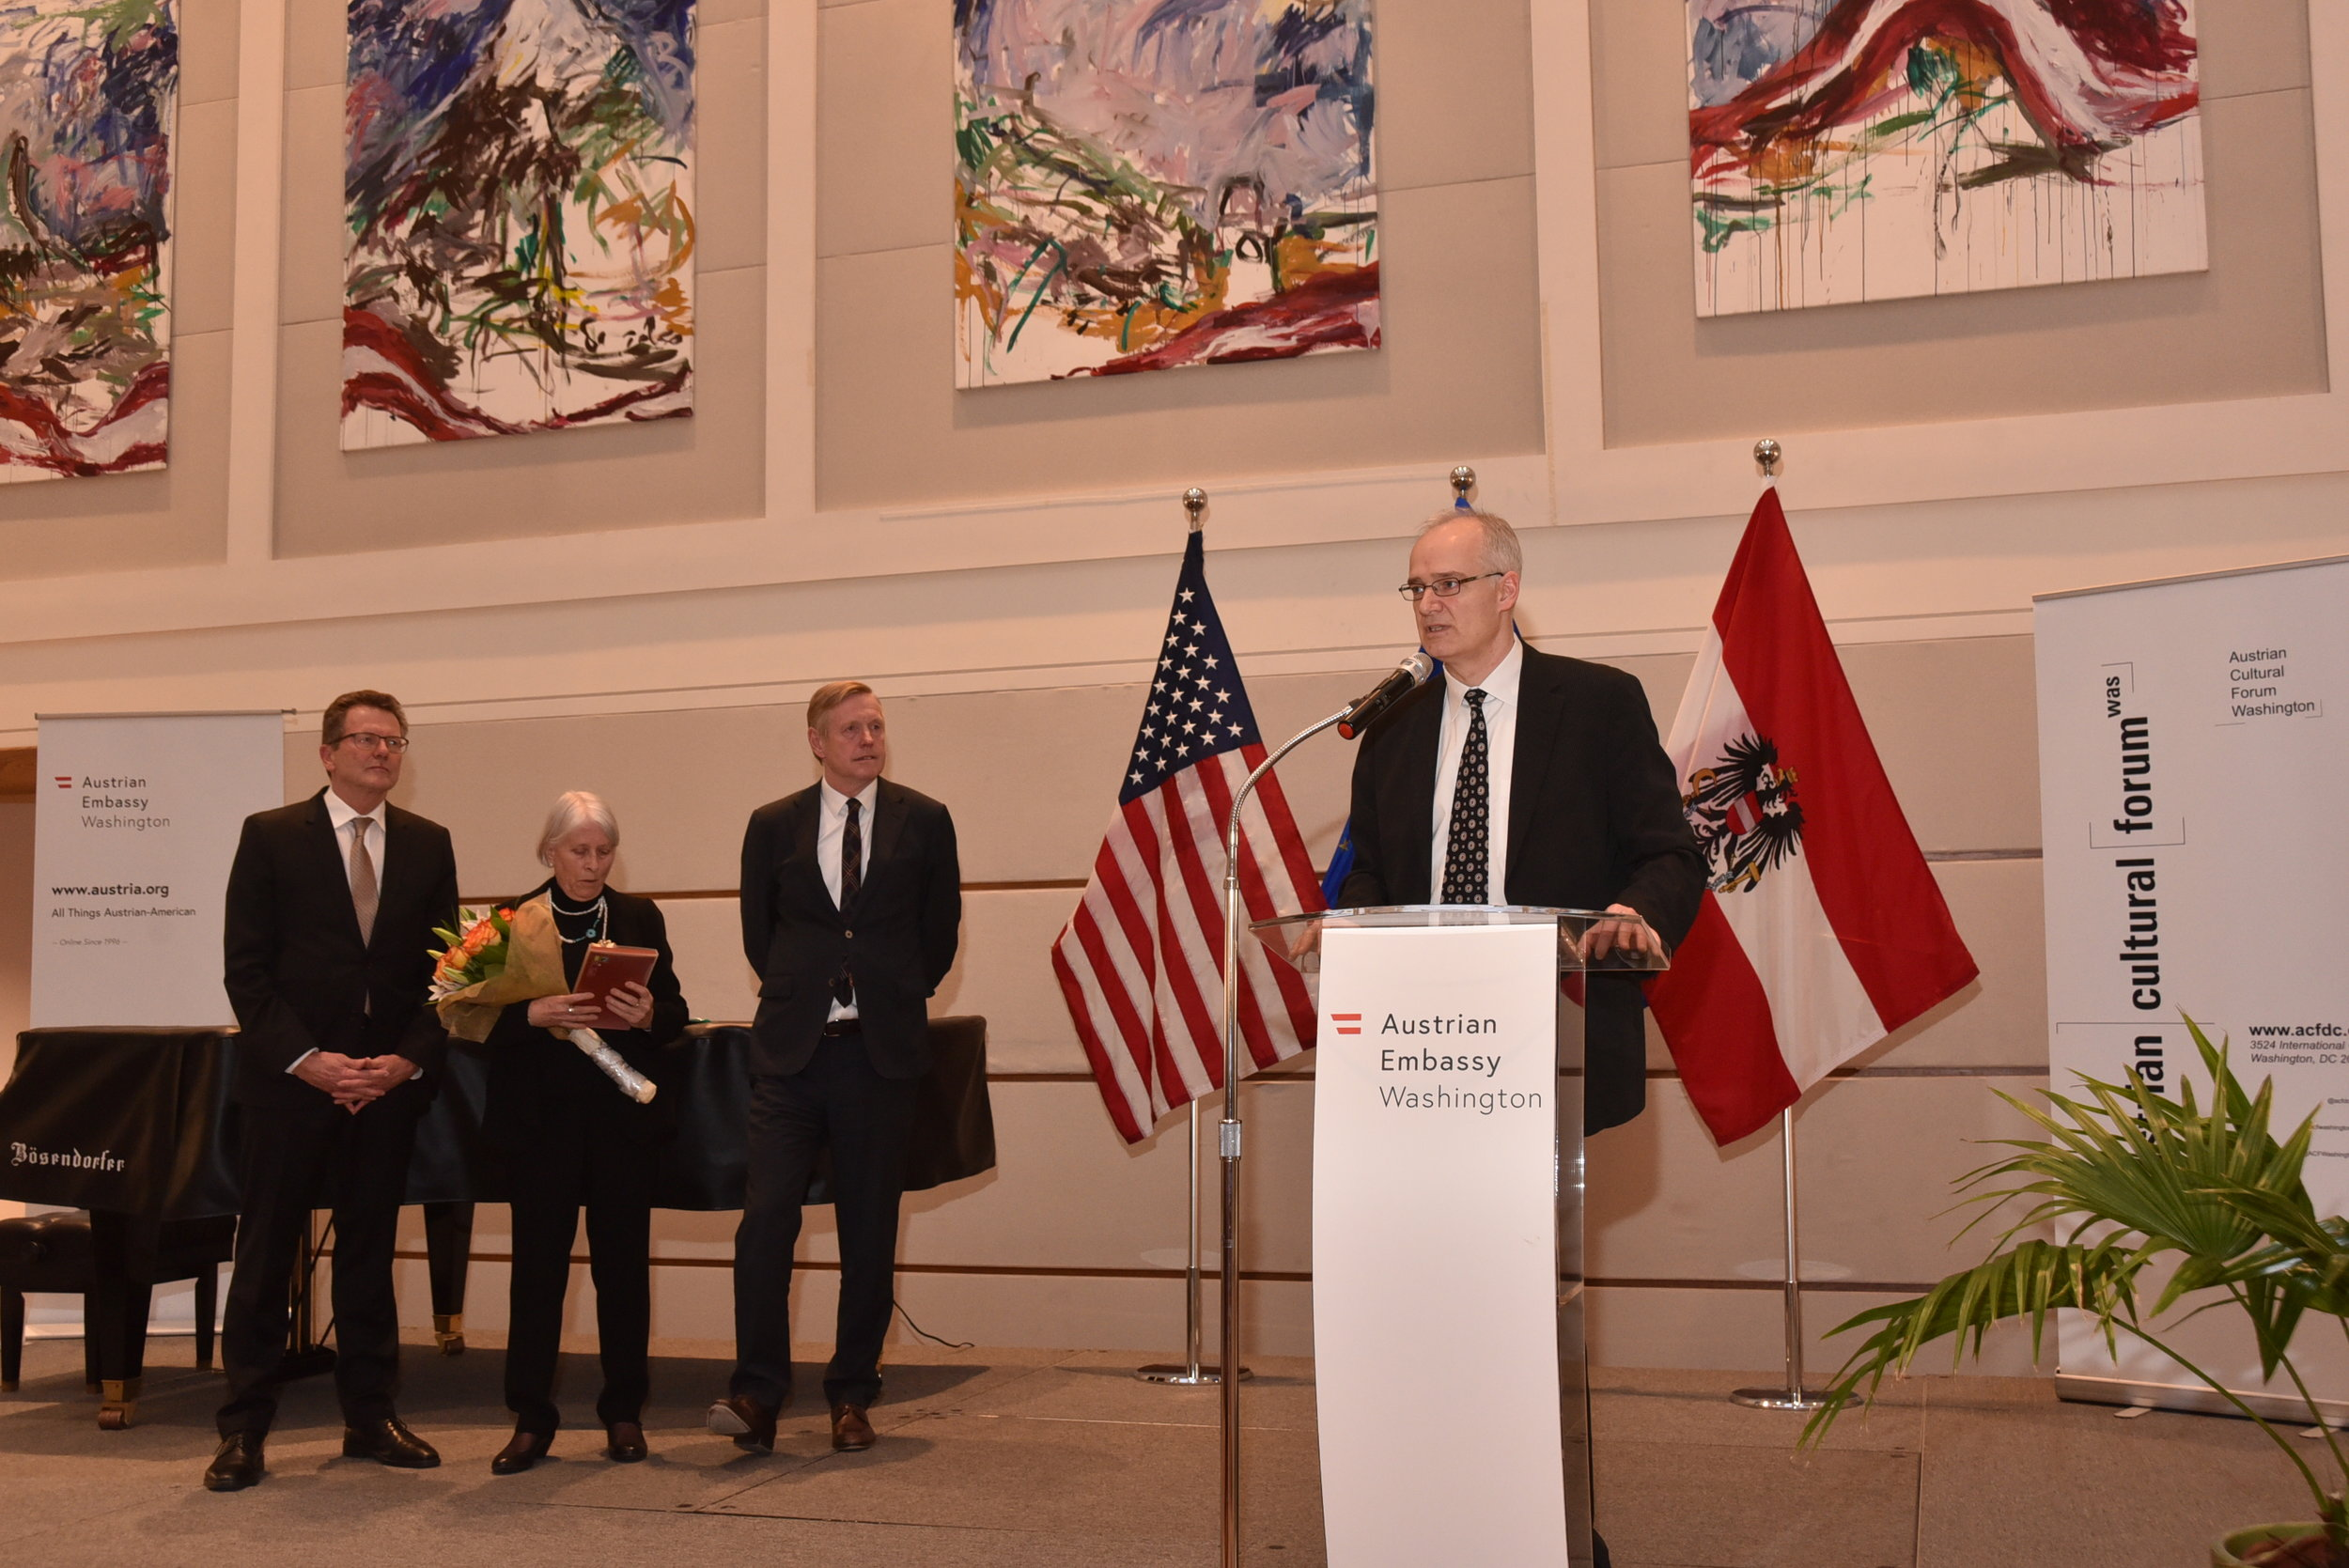 Minister Thorsten Eisingerich, Director of the Austrian Press & Information Service, organized the exhibition in conjunction with Austrian Cultural Forum Washington Director Eva Schöfer